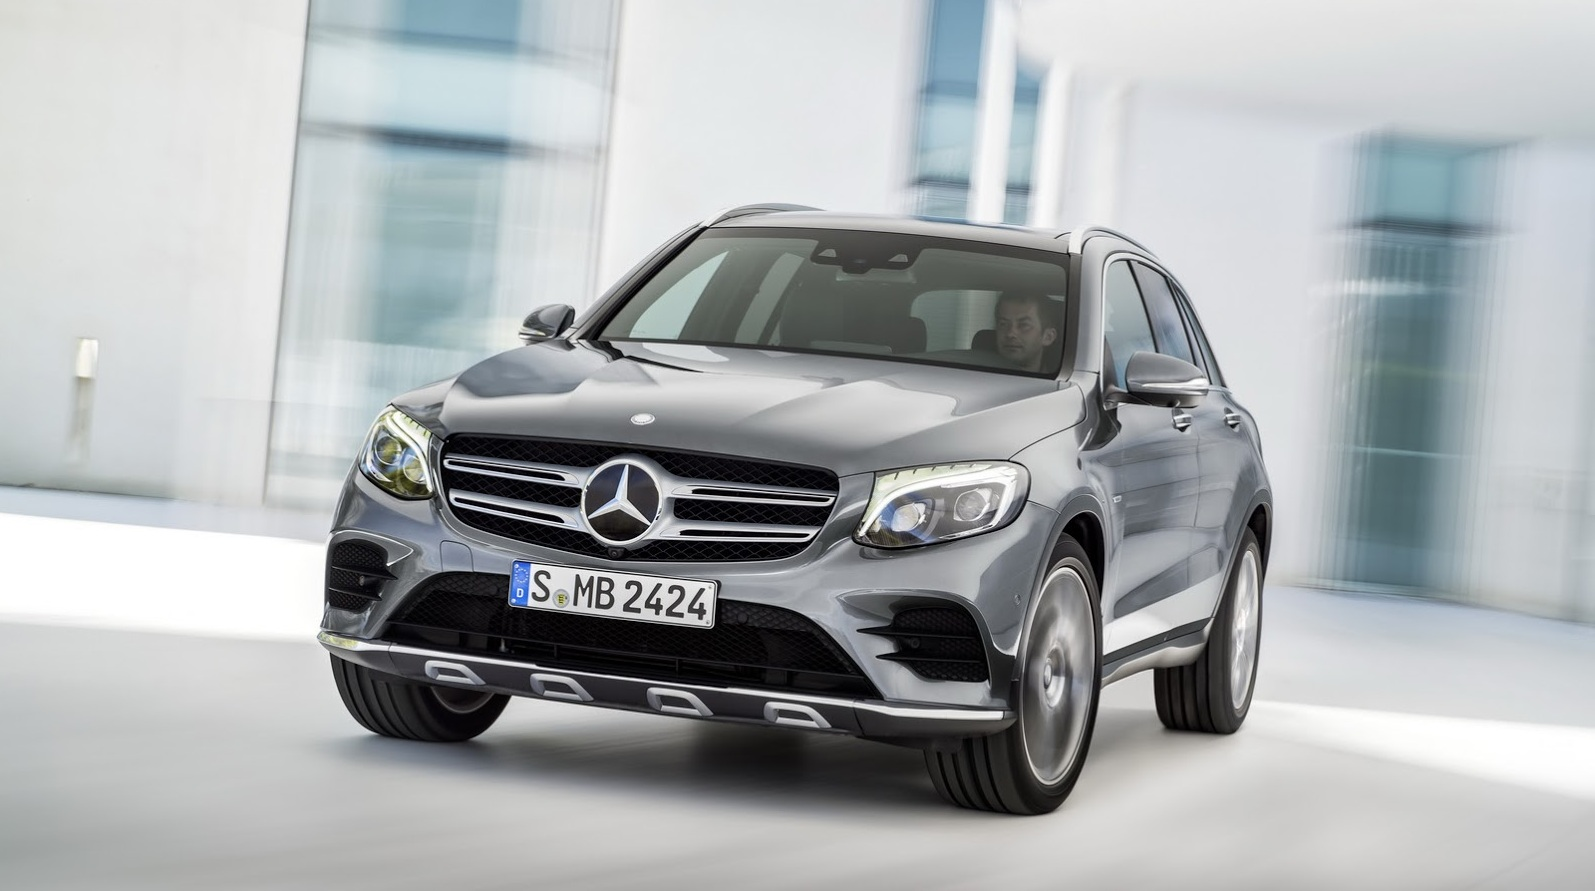 2016 Mercedes-Benz GLC: ����������� ����������